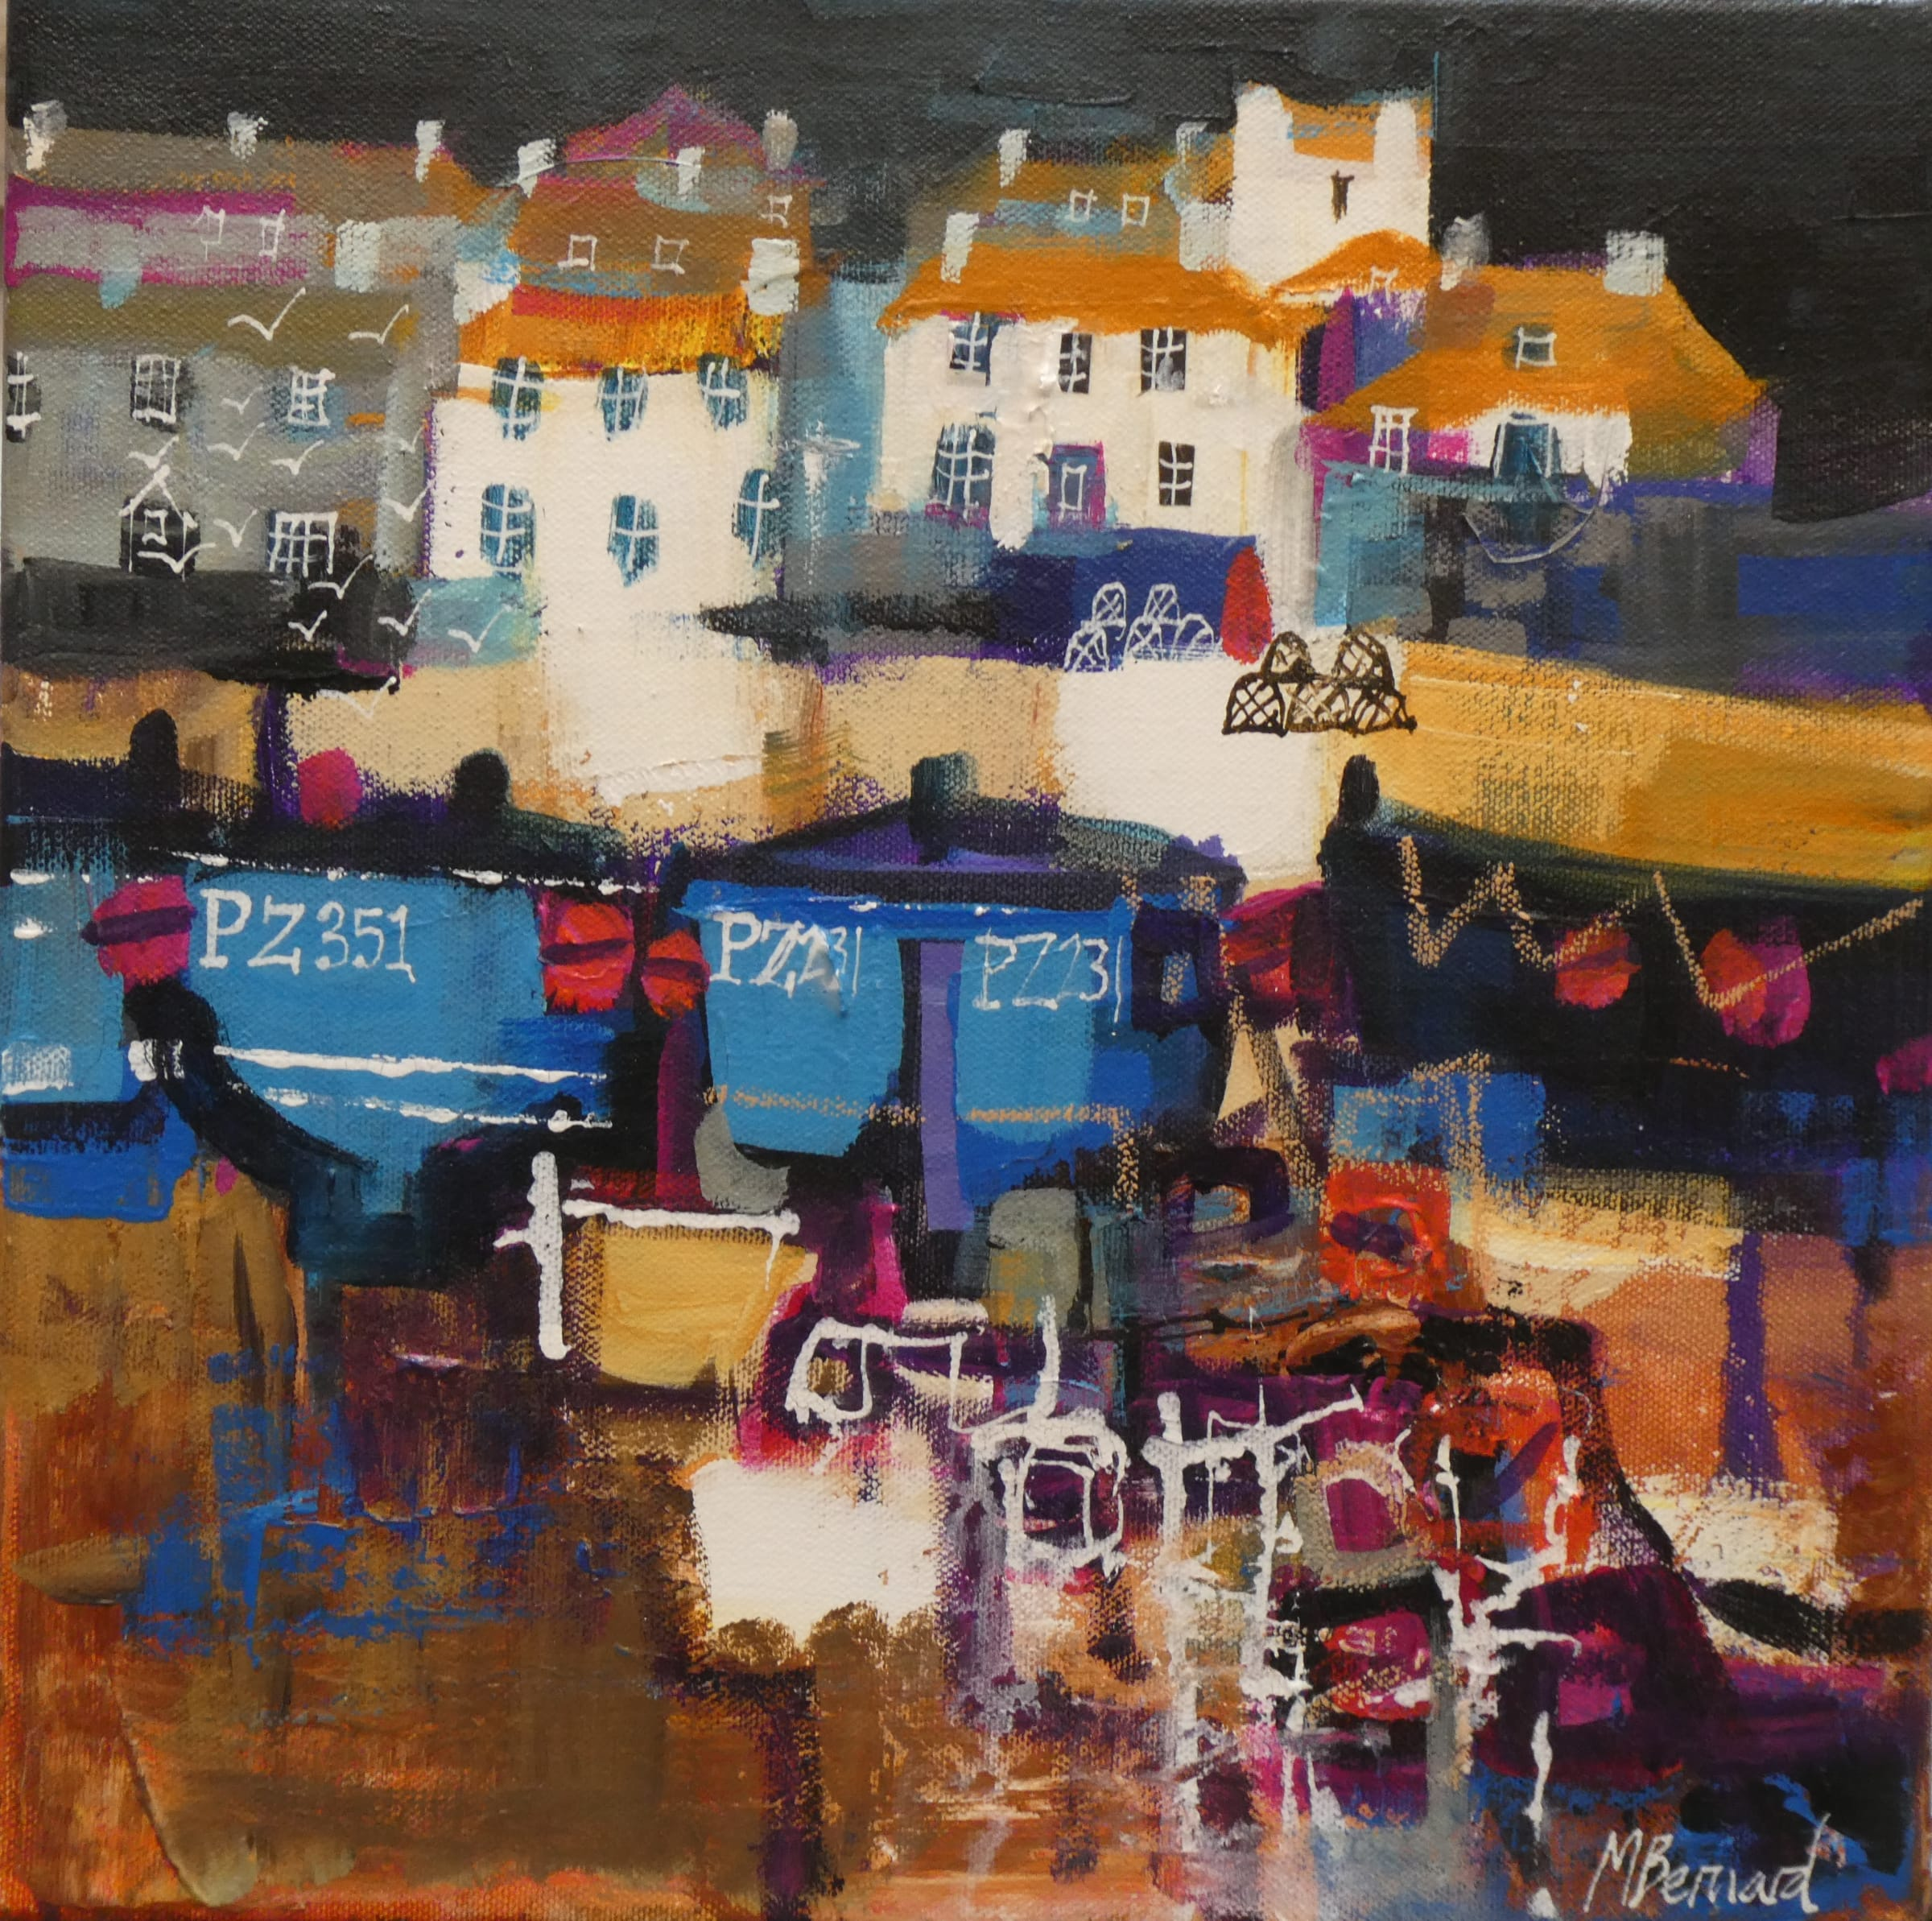 """<span class=""""link fancybox-details-link""""><a href=""""/artists/155-mike-bernard-ri/works/7670-mike-bernard-ri-beached-fishing-boats-2021/"""">View Detail Page</a></span><div class=""""artist""""><strong>Mike Bernard RI</strong></div> <div class=""""title""""><em>Beached Fishing Boats</em>, 2021</div> <div class=""""medium"""">acrylic and collage on canvas</div> <div class=""""dimensions"""">canvas: 30 x 30 cm <br /> frame: 37 x 37 cm</div><div class=""""price"""">£850.00</div><div class=""""copyright_line"""">Own Art: £85 x 10 Months, 0% APR</div>"""